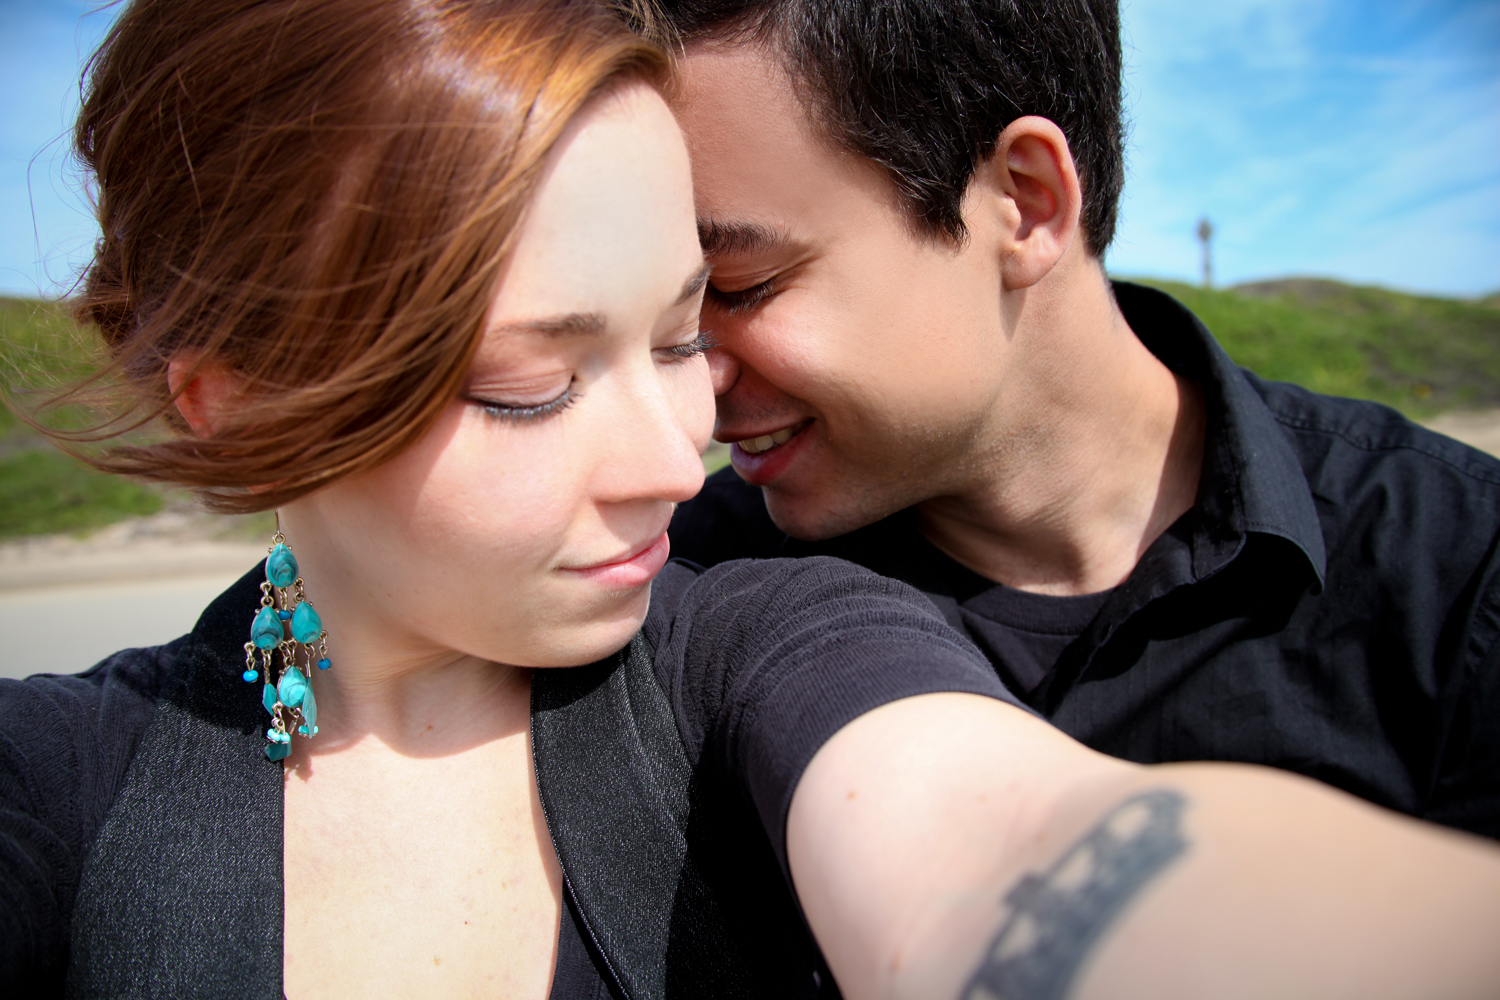 engagement-video-ideas_cute-marriage-proposal-ideas_34